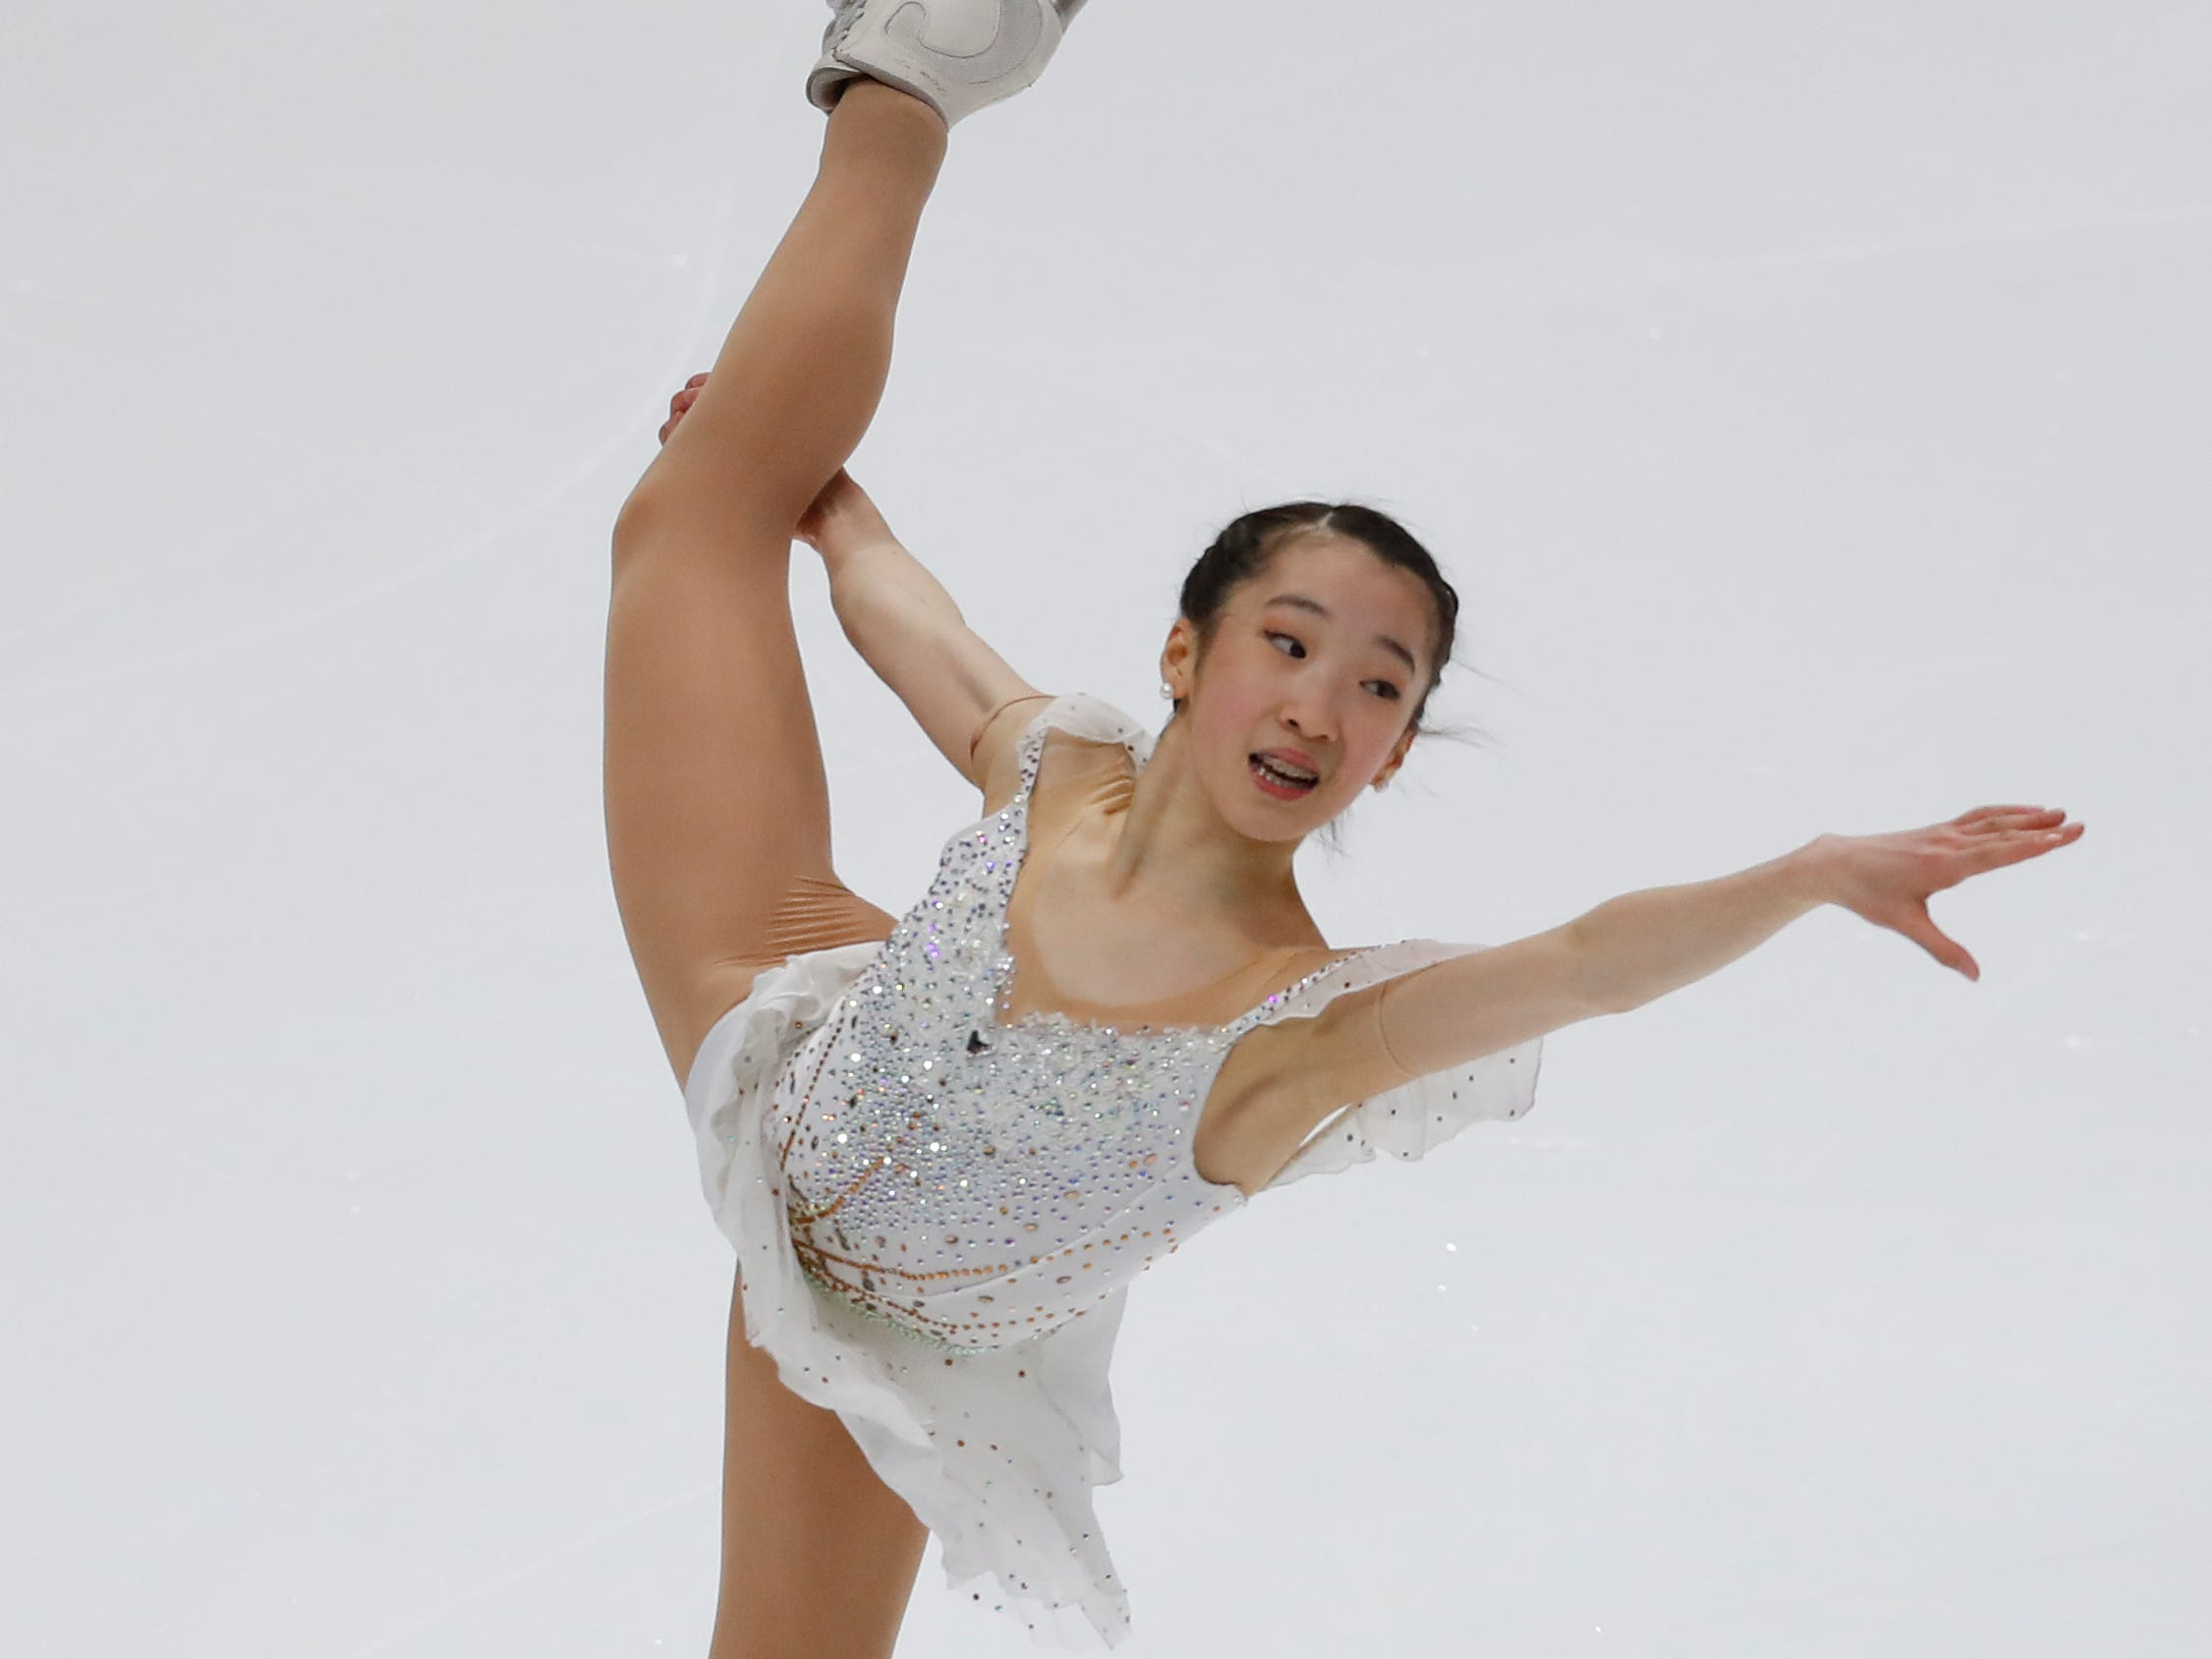 Ting Cui performs during her women's free skate program at the U.S. Figure Skating Championships, Friday, Jan. 25, 2019, in Detroit. (AP Photo/Paul Sancya)